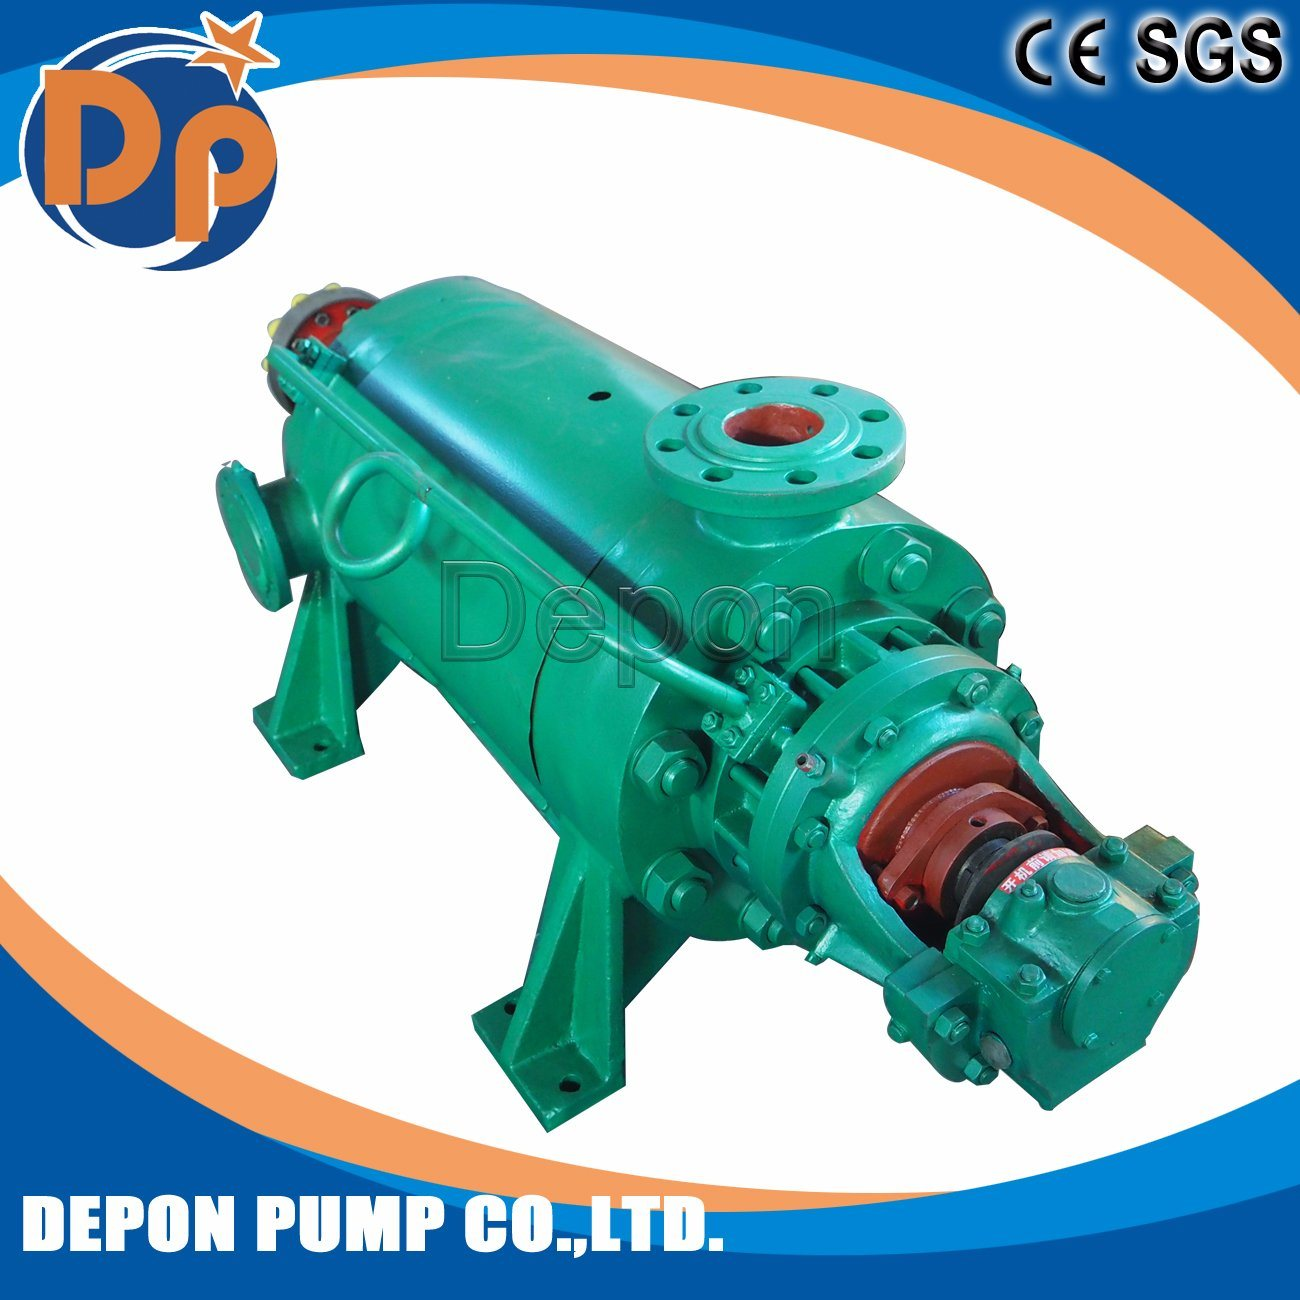 Marine Horizontal Electric Mining Centrifugal Pump Supplier